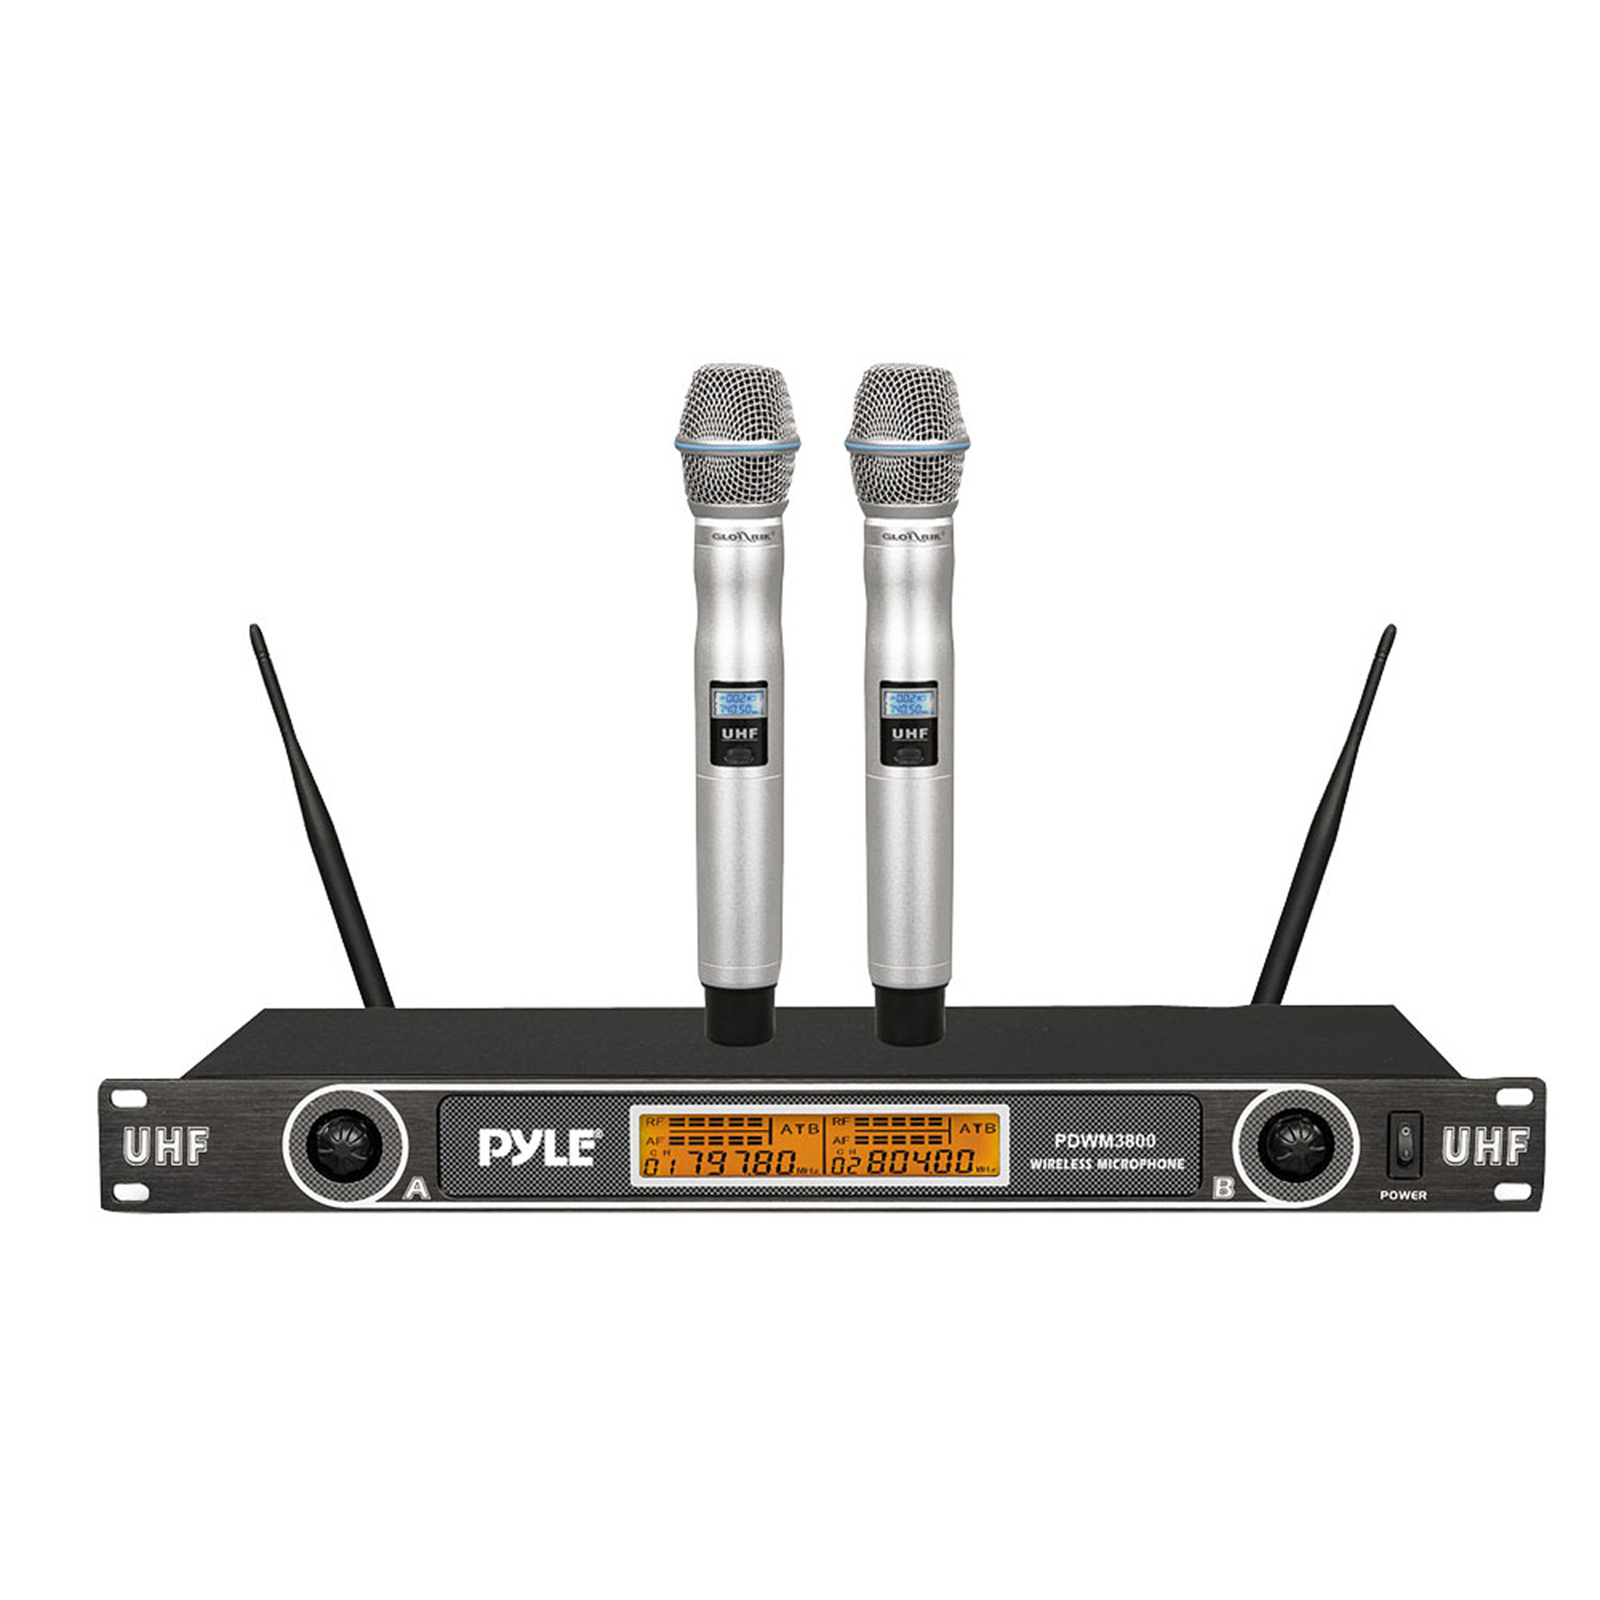 PylePro Professional Rack Mount Dual 2.4G Handheld Microphone System by Pyle